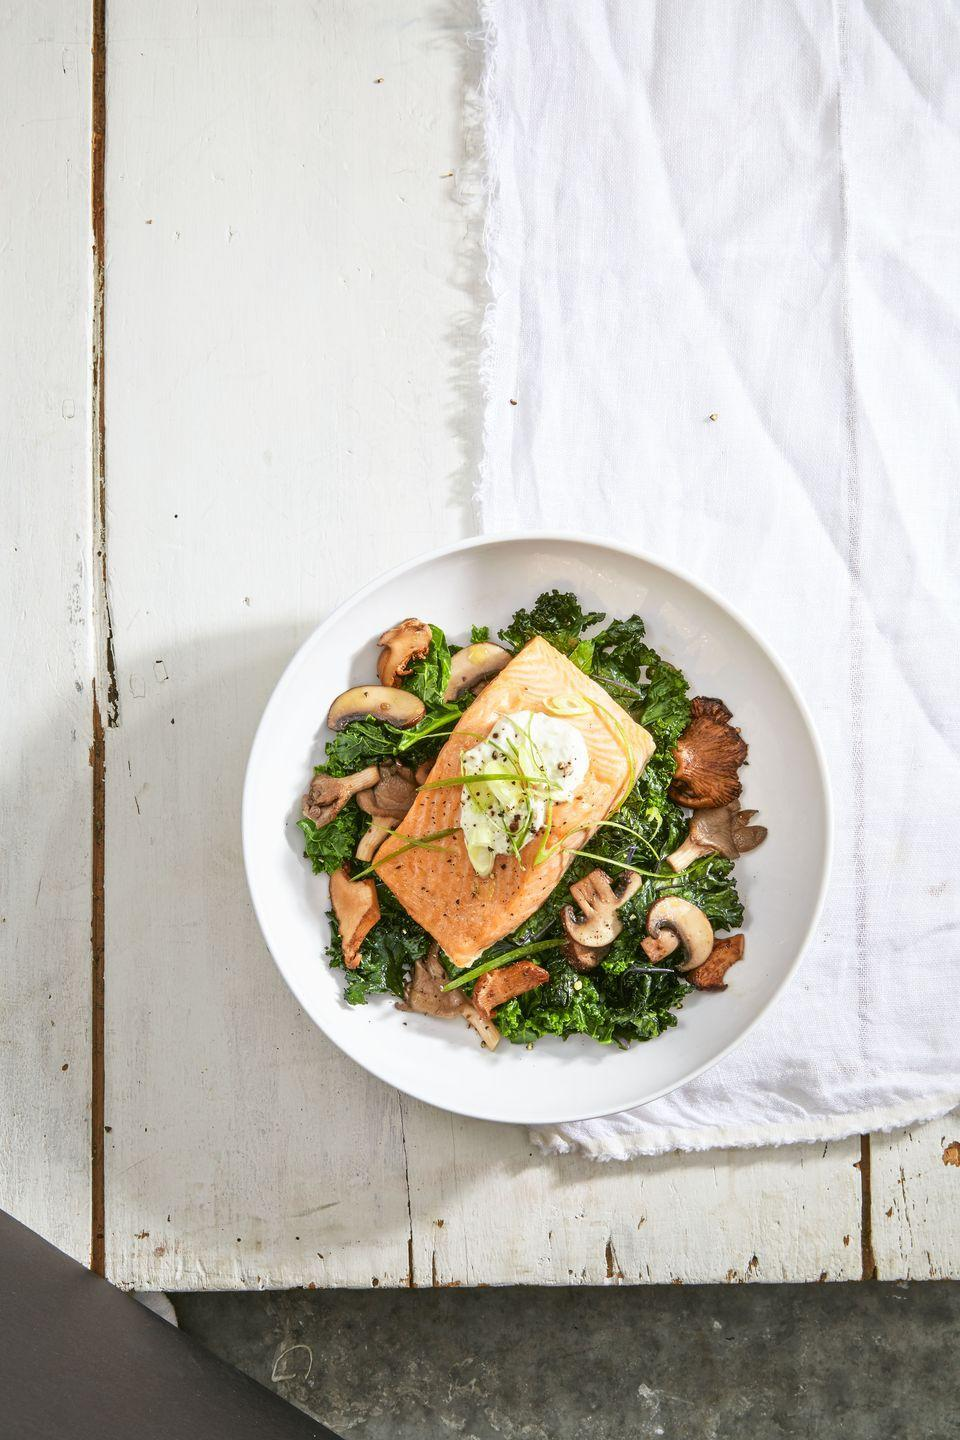 """<p>The Mediterranean diet is <em>so </em>last year. Now, it's all about eating like a viking. Exhibit A: This Nordic-inspired salmon dish. </p><p><em><a href=""""https://www.goodhousekeeping.com/food-recipes/easy/a36252/salmon-with-skyr-and-sauteed-kale/"""" rel=""""nofollow noopener"""" target=""""_blank"""" data-ylk=""""slk:Get the recipe for Salmon with Skyr and Sautéed Kale »"""" class=""""link rapid-noclick-resp"""">Get the recipe for Salmon with Skyr and Sautéed Kale »</a></em> </p>"""